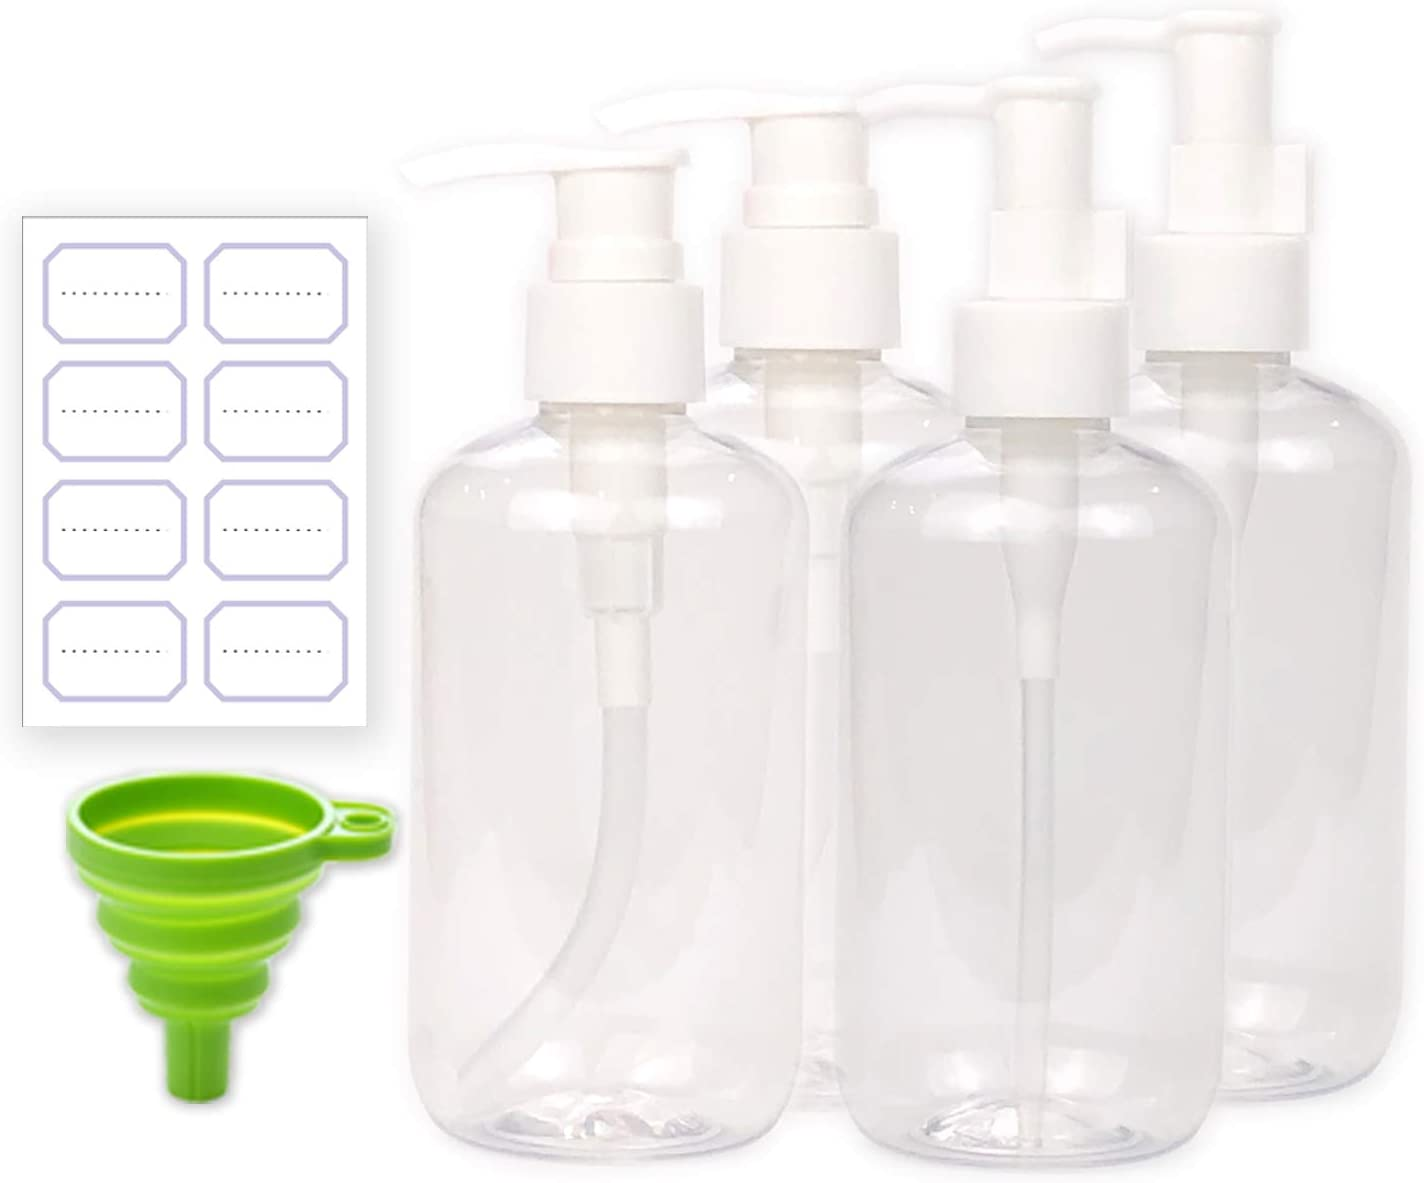 Tbrand 8 oz 4 Packs Plastic Empty Bottle for DIY Lotions Massage Oils Food Grade Plastic Containers Cylinder with 2 Kinds of Pump & Funnel Labels